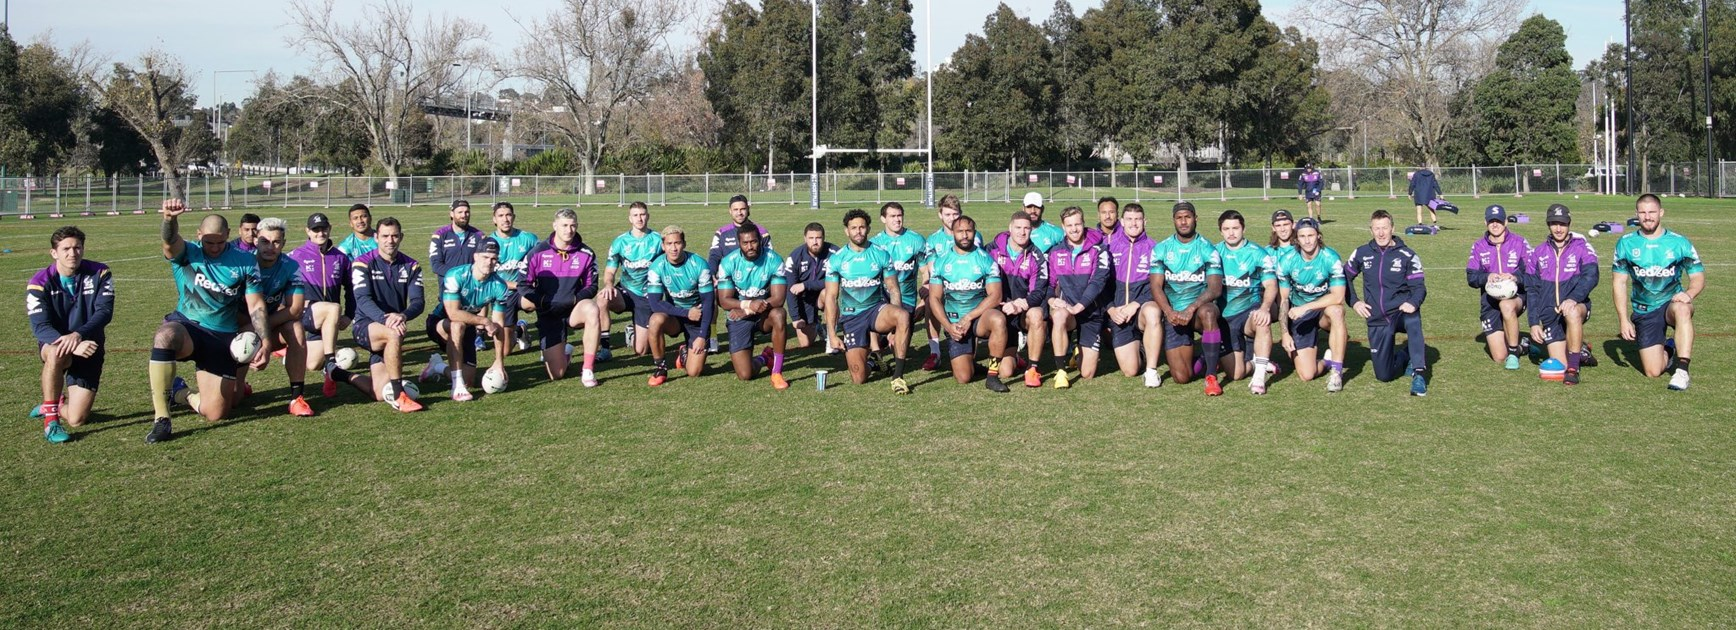 Addo-Carr inspires Storm to take a knee for Black Lives Matter movement